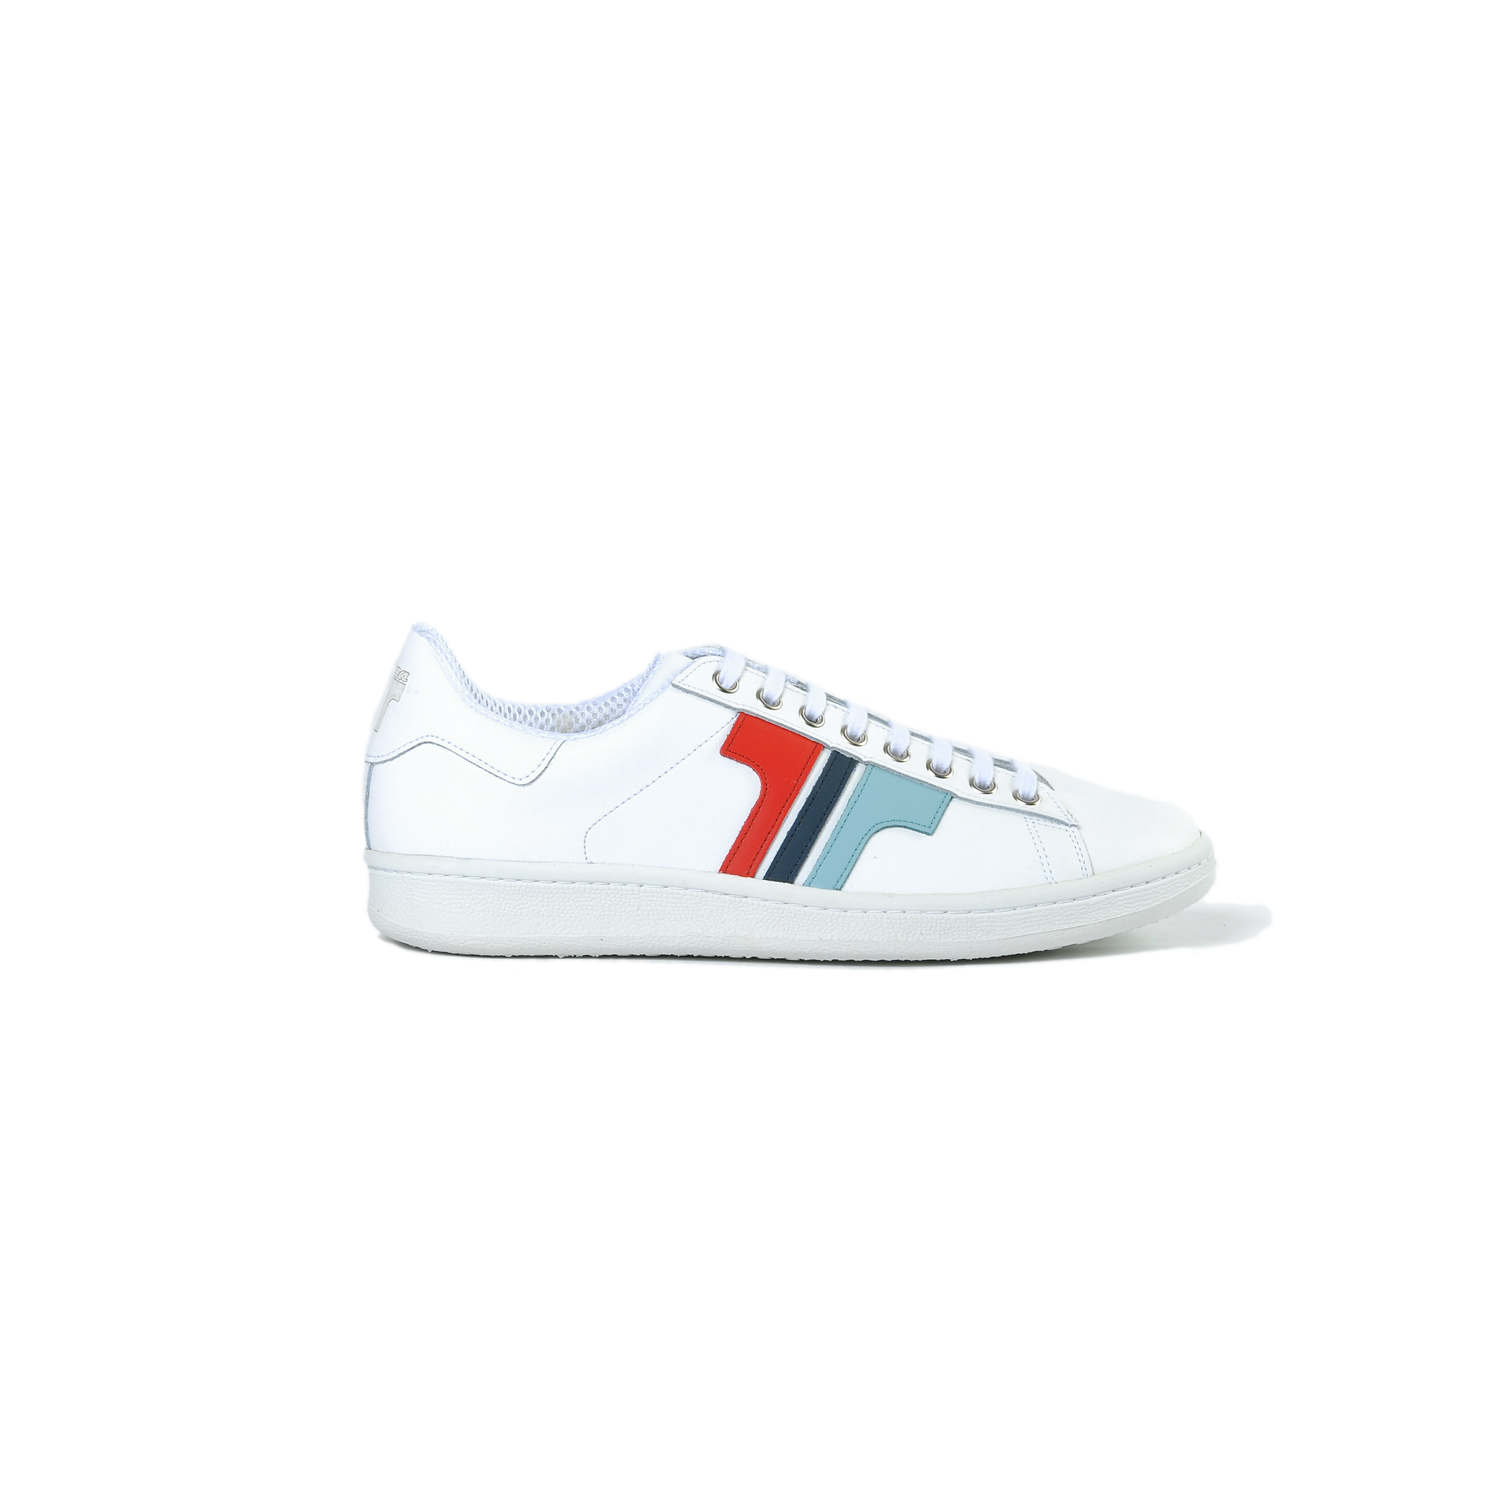 Tisza shoes - Tradíció'80 - White-blue-red